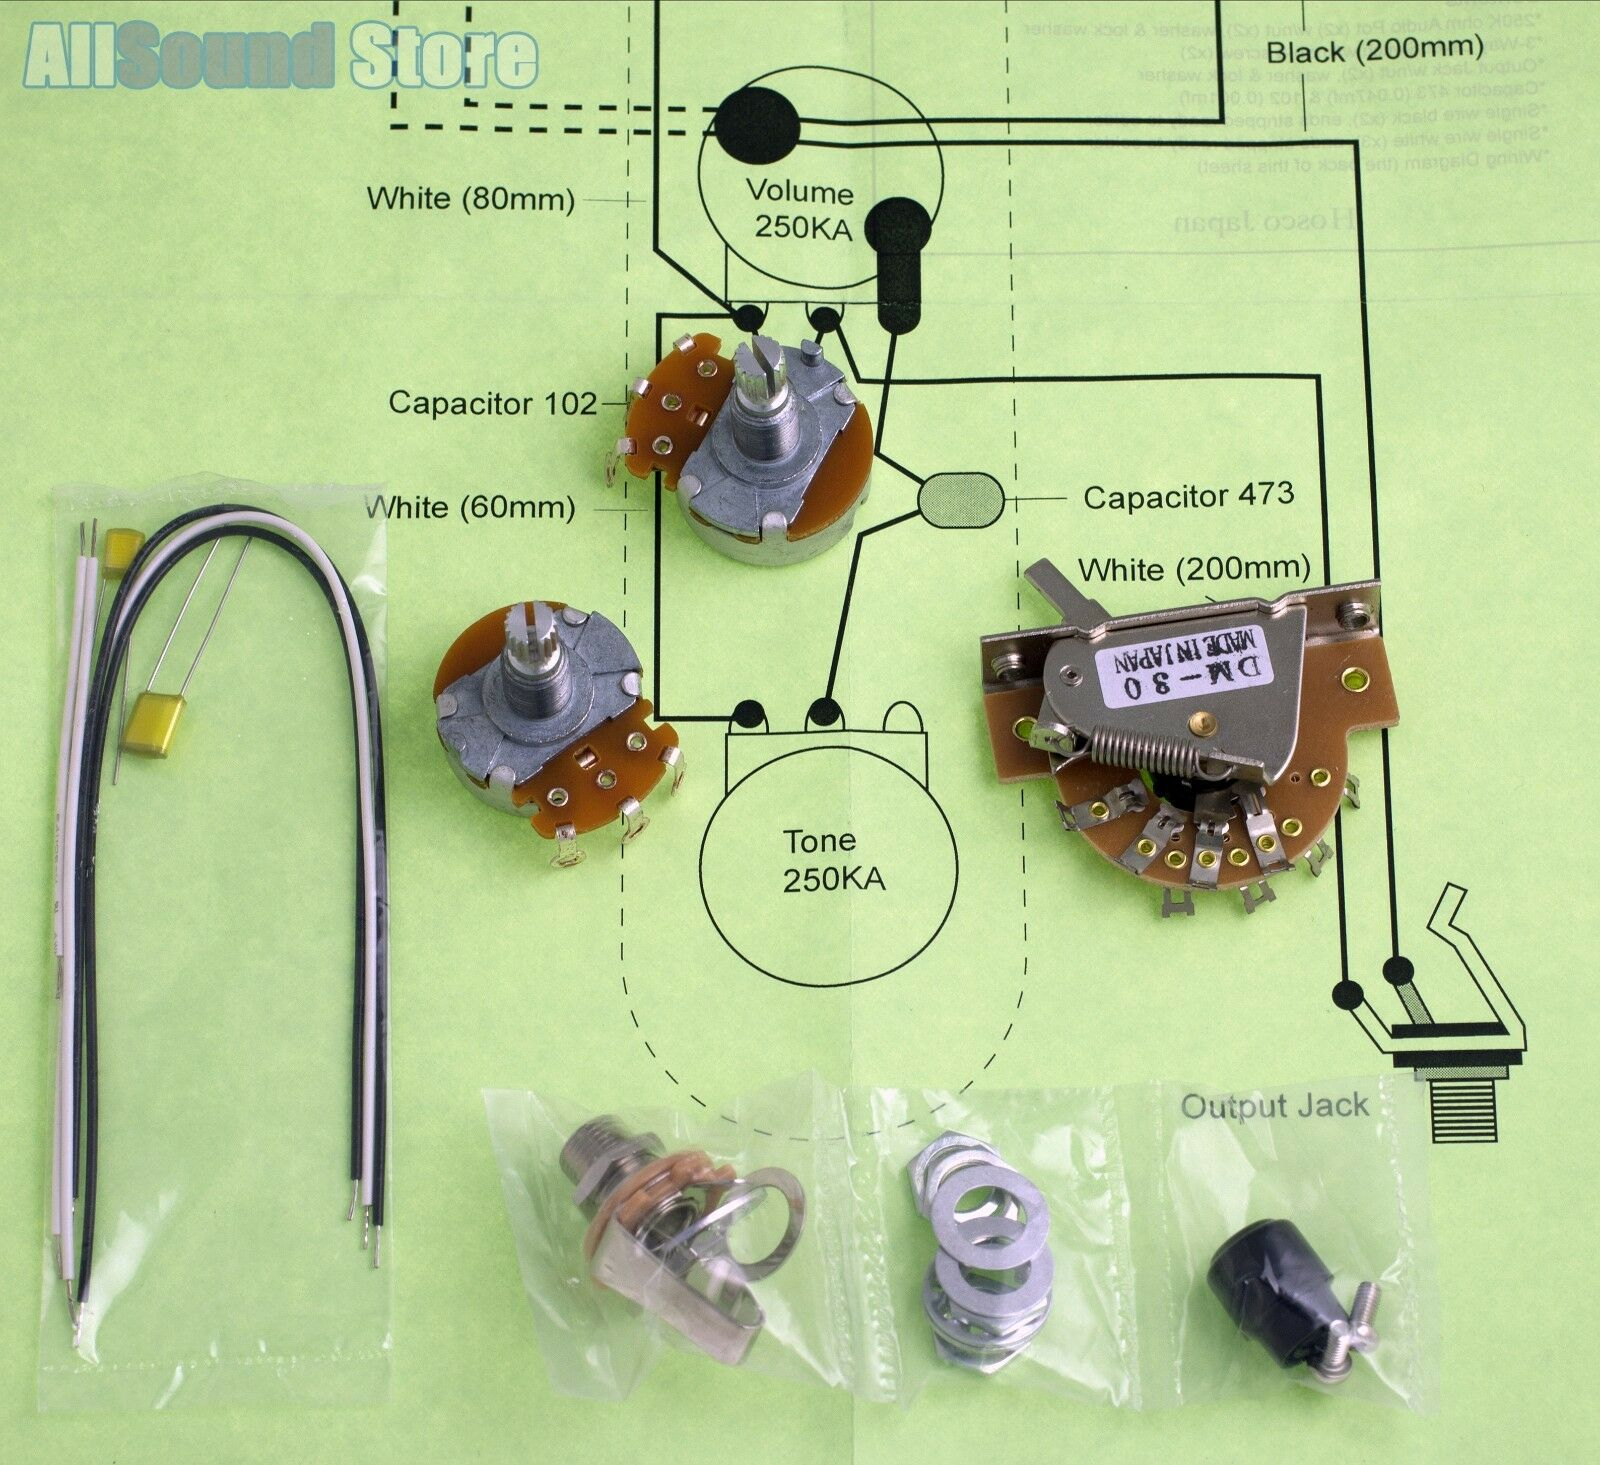 Wiring Kit for Import Fender Telecaster Tele COMPLETE telecaster kit wiring diagram guitars music production home  at suagrazia.org